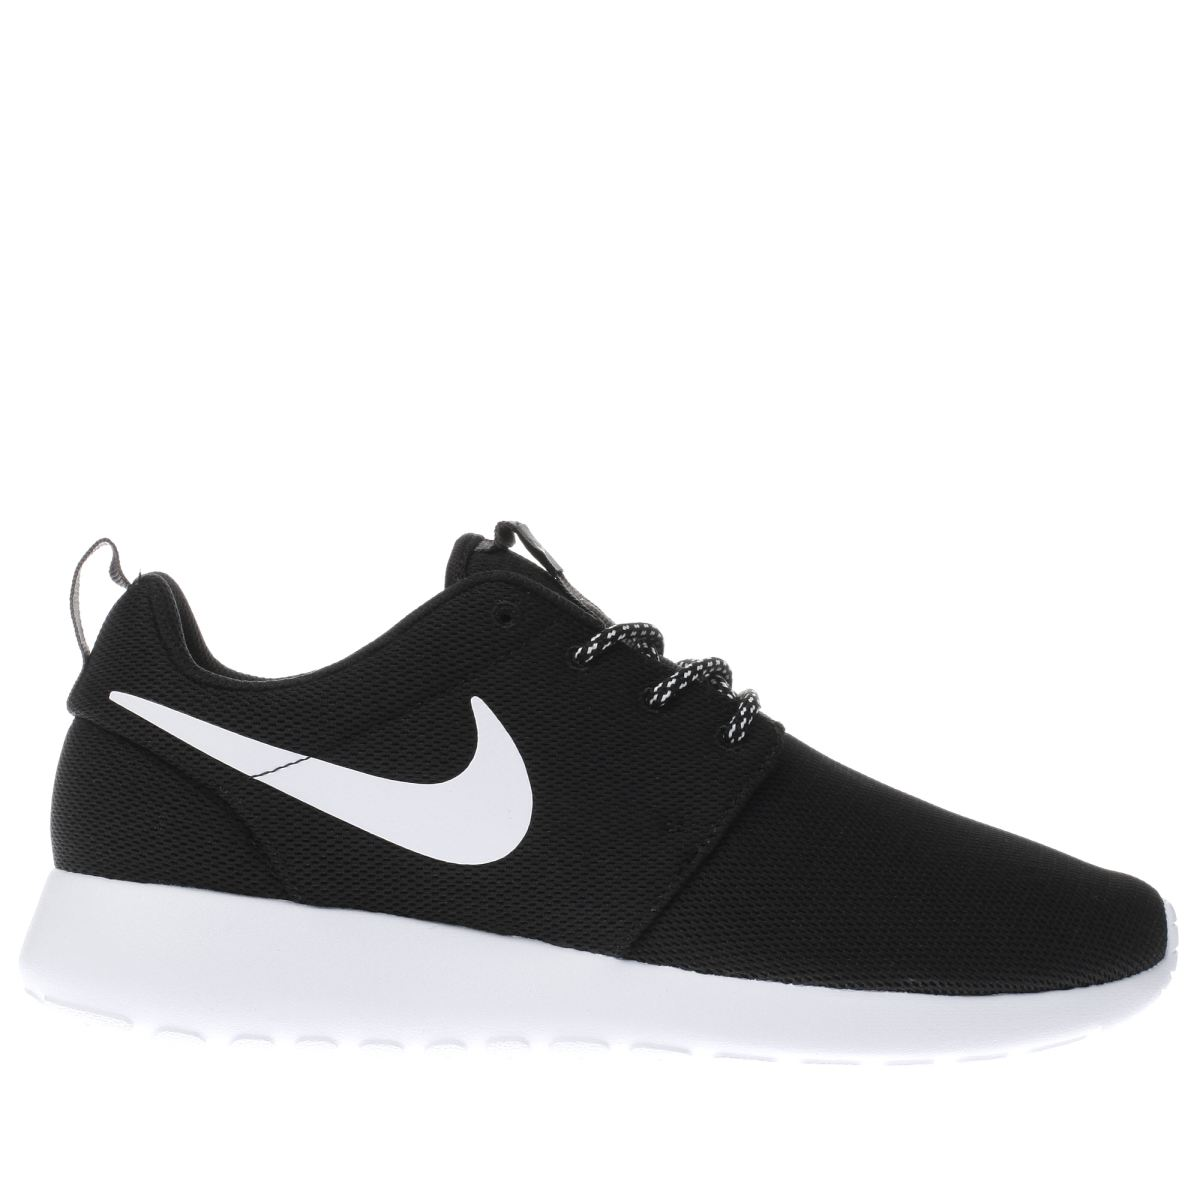 56eb4c0f357 Nike Roshe Run Women Black And White Ombre extreme-hosting.co.uk